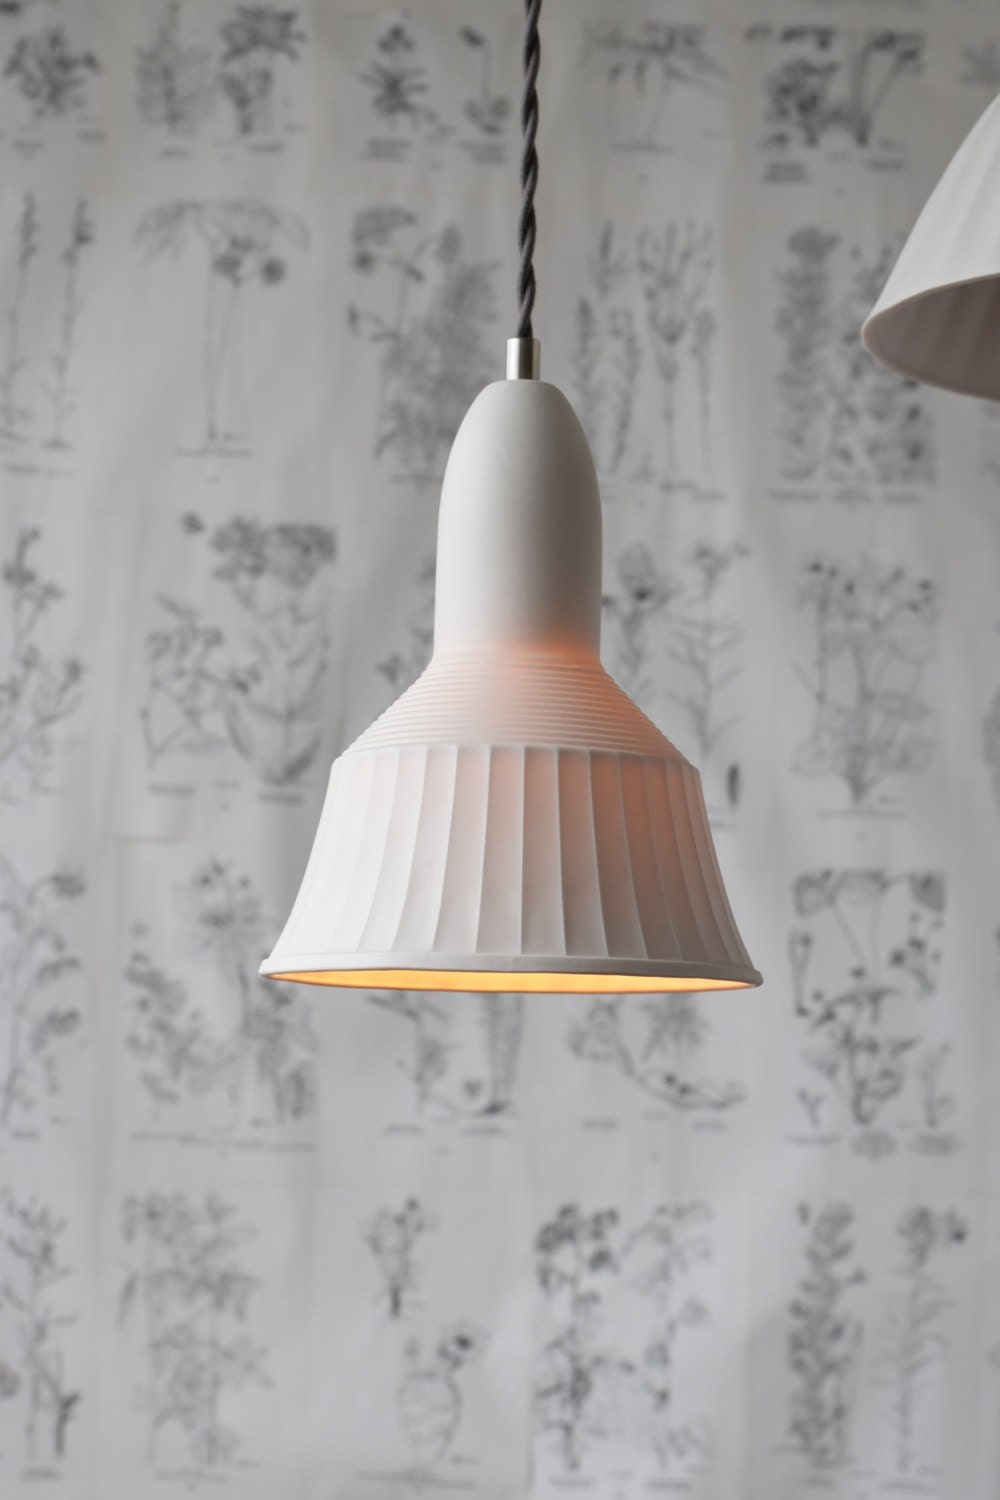 porcelain lighting. veda porcelain pendant light modern lighting design translucent